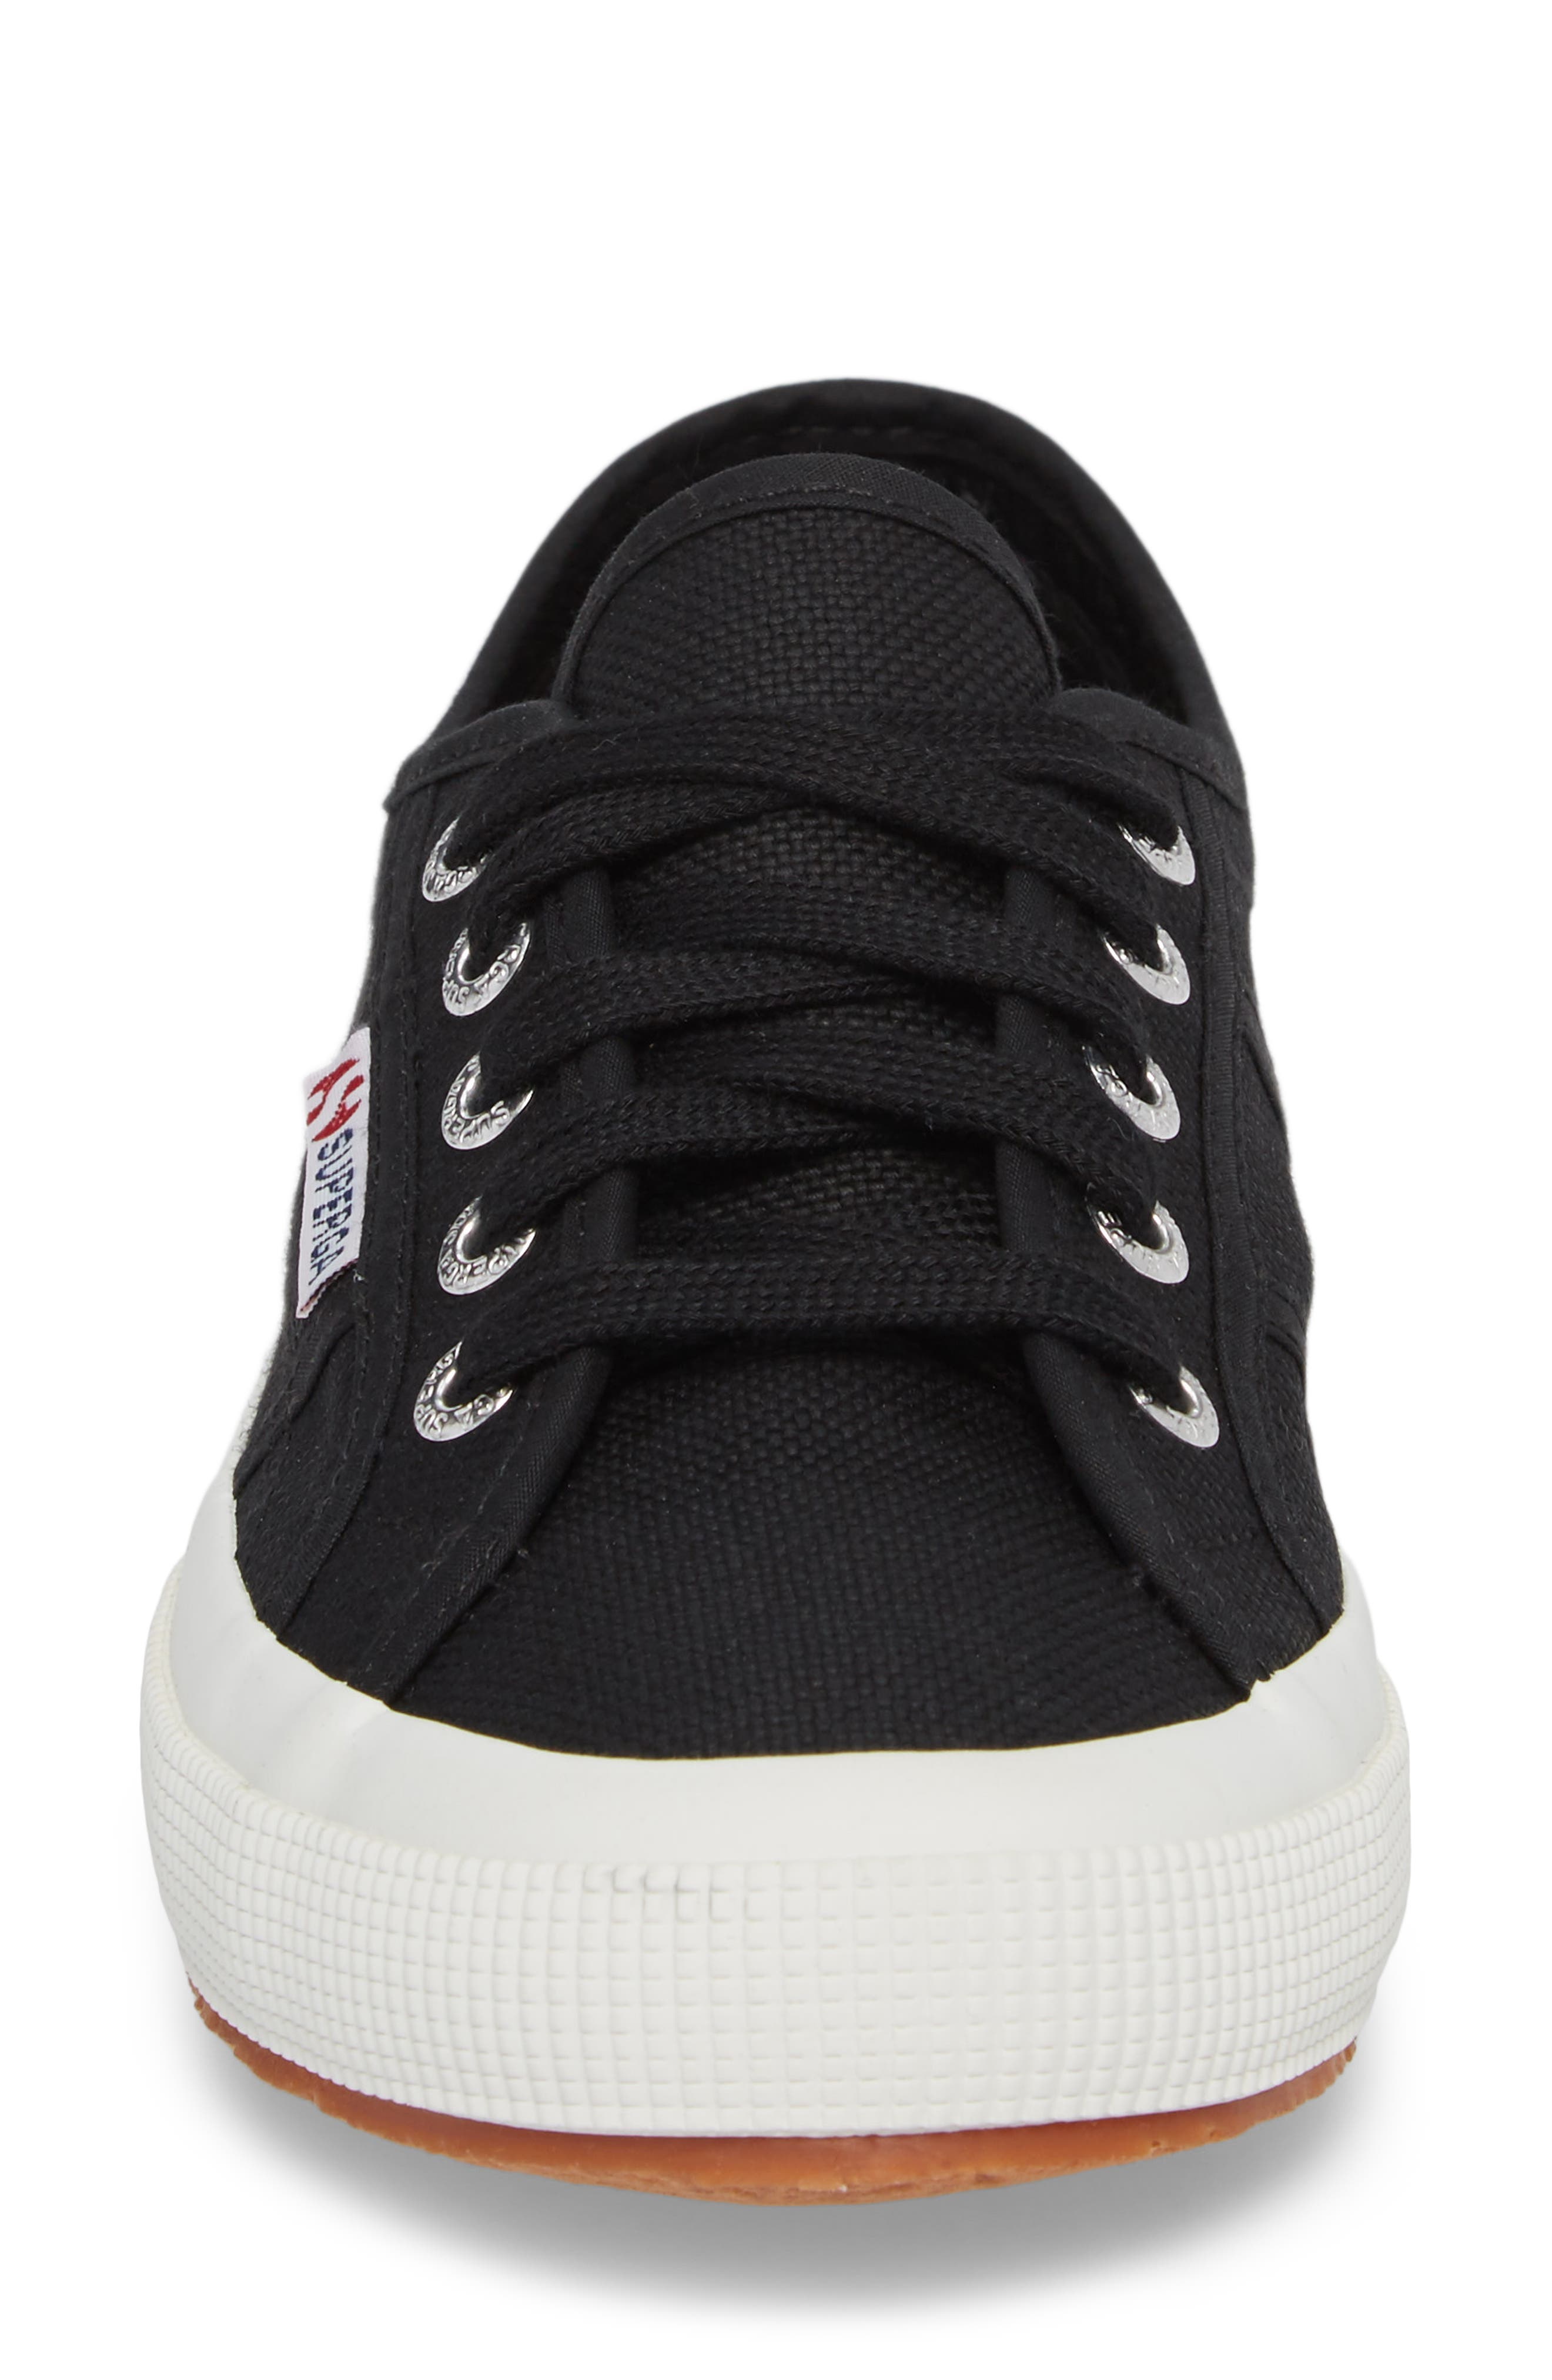 'Cotu' Sneaker,                             Alternate thumbnail 4, color,                             BLACK/ BLACK/ WHITE